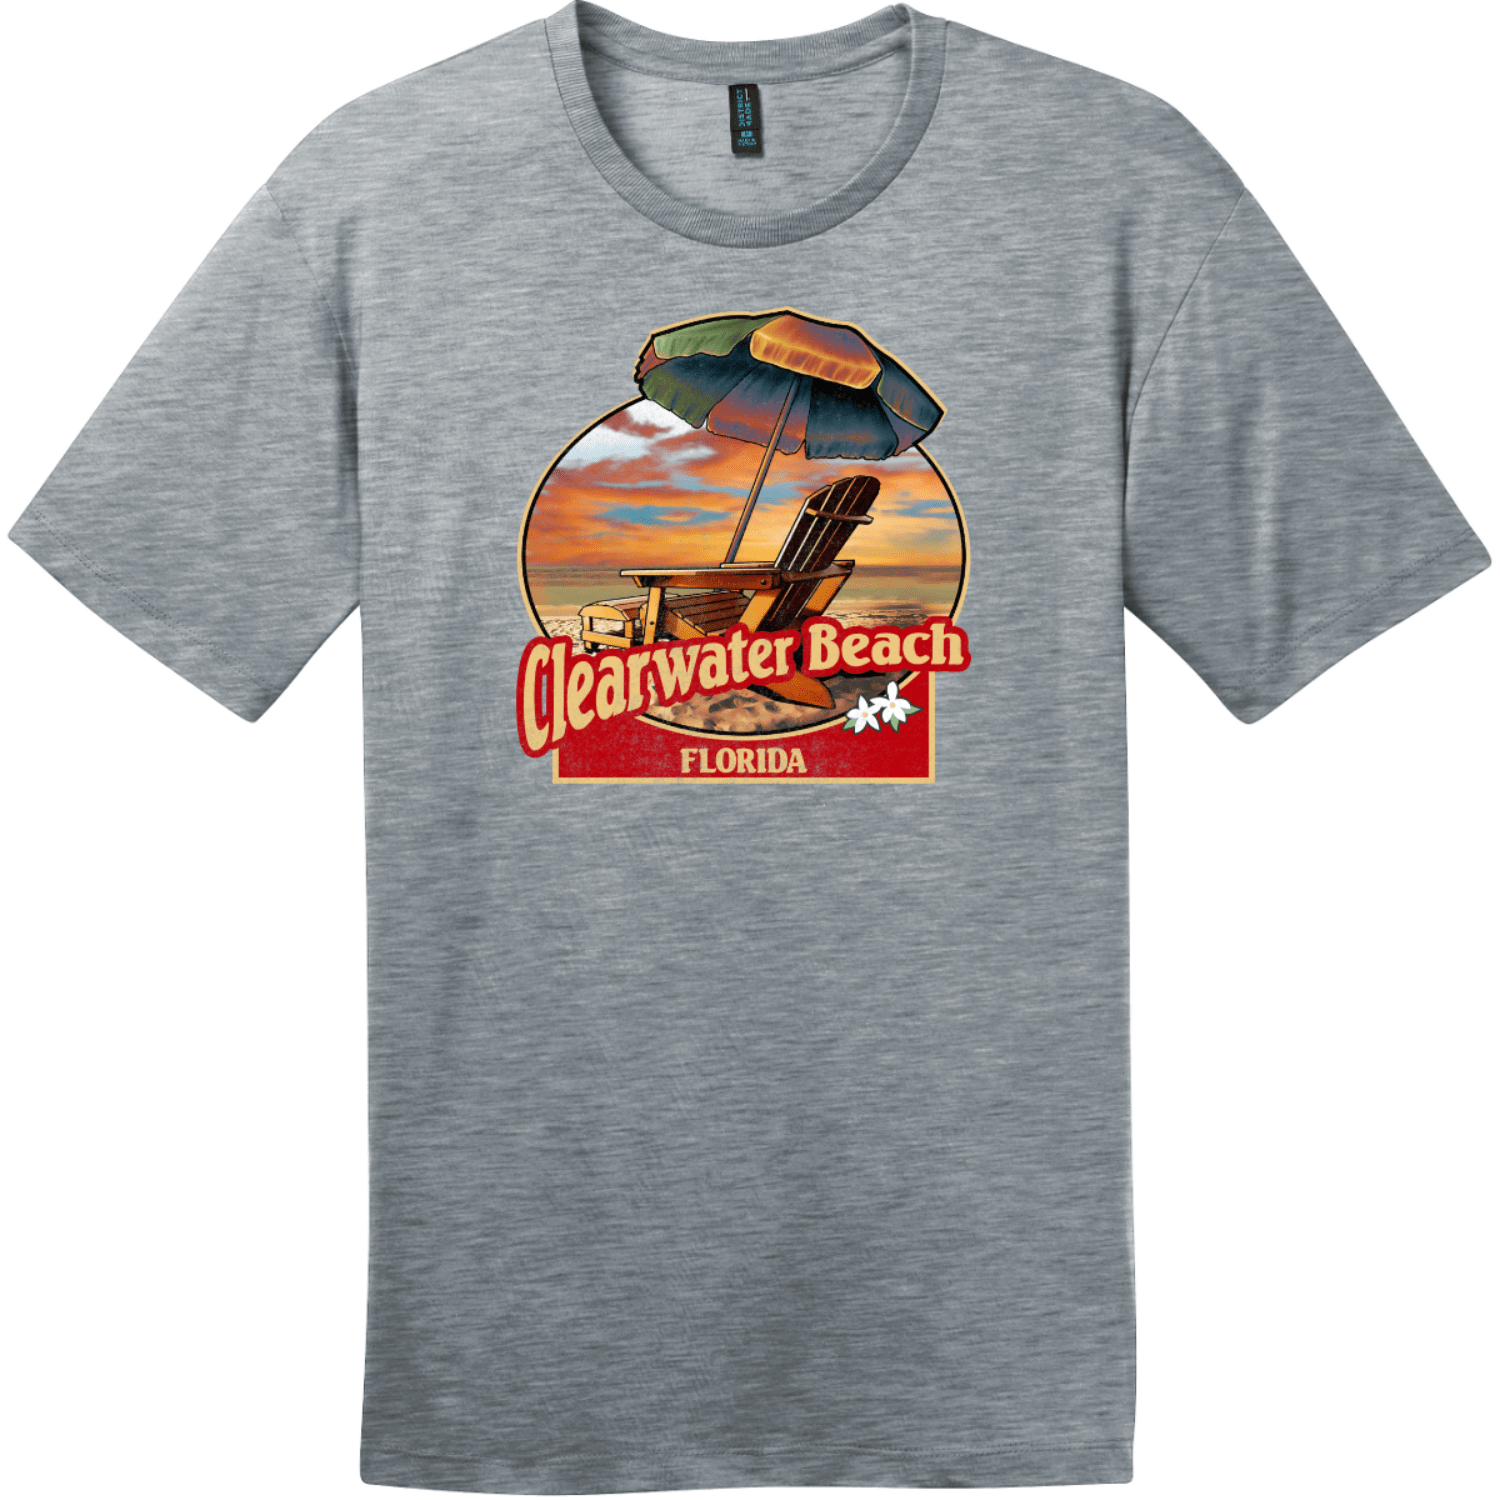 Clearwater Beach Florida Vintage Beach T-Shirt Heathered Steel District Perfect Weight Tee DT104